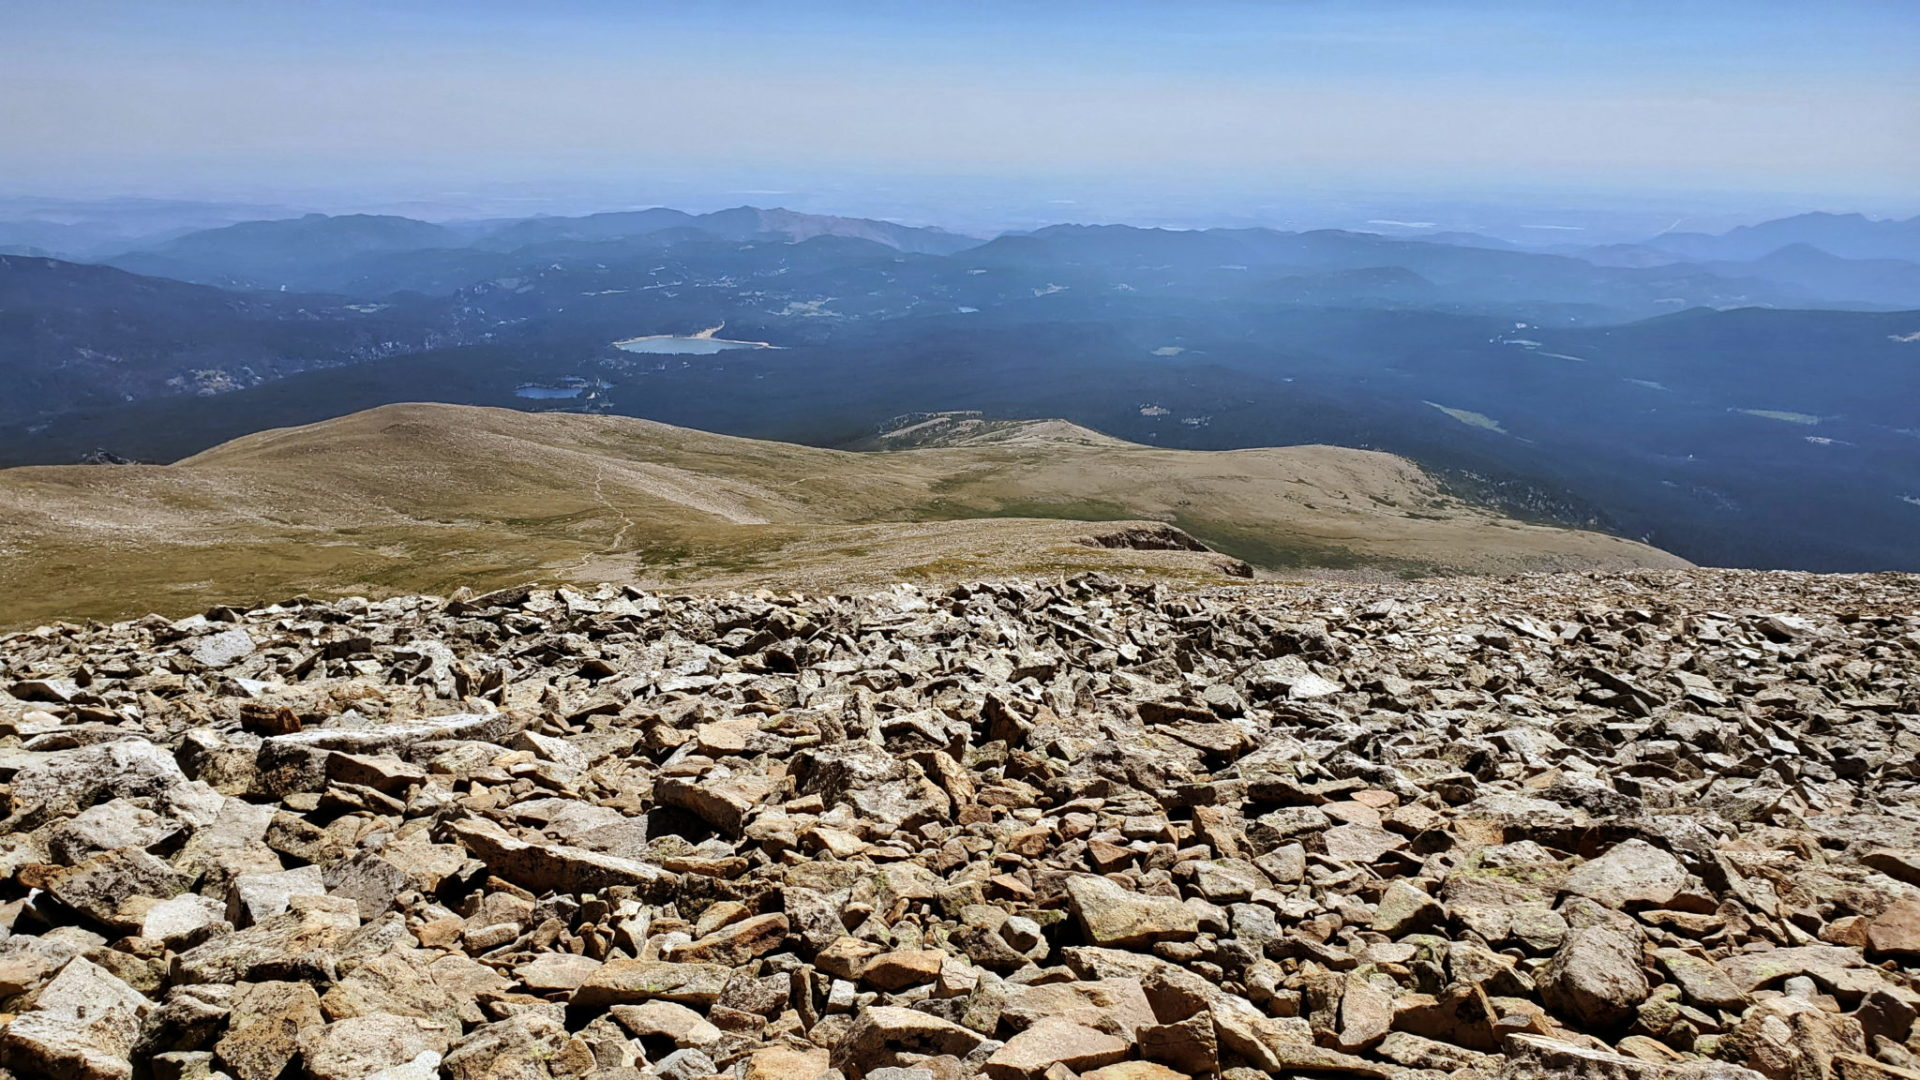 Views east from the summit with haze from wildfires